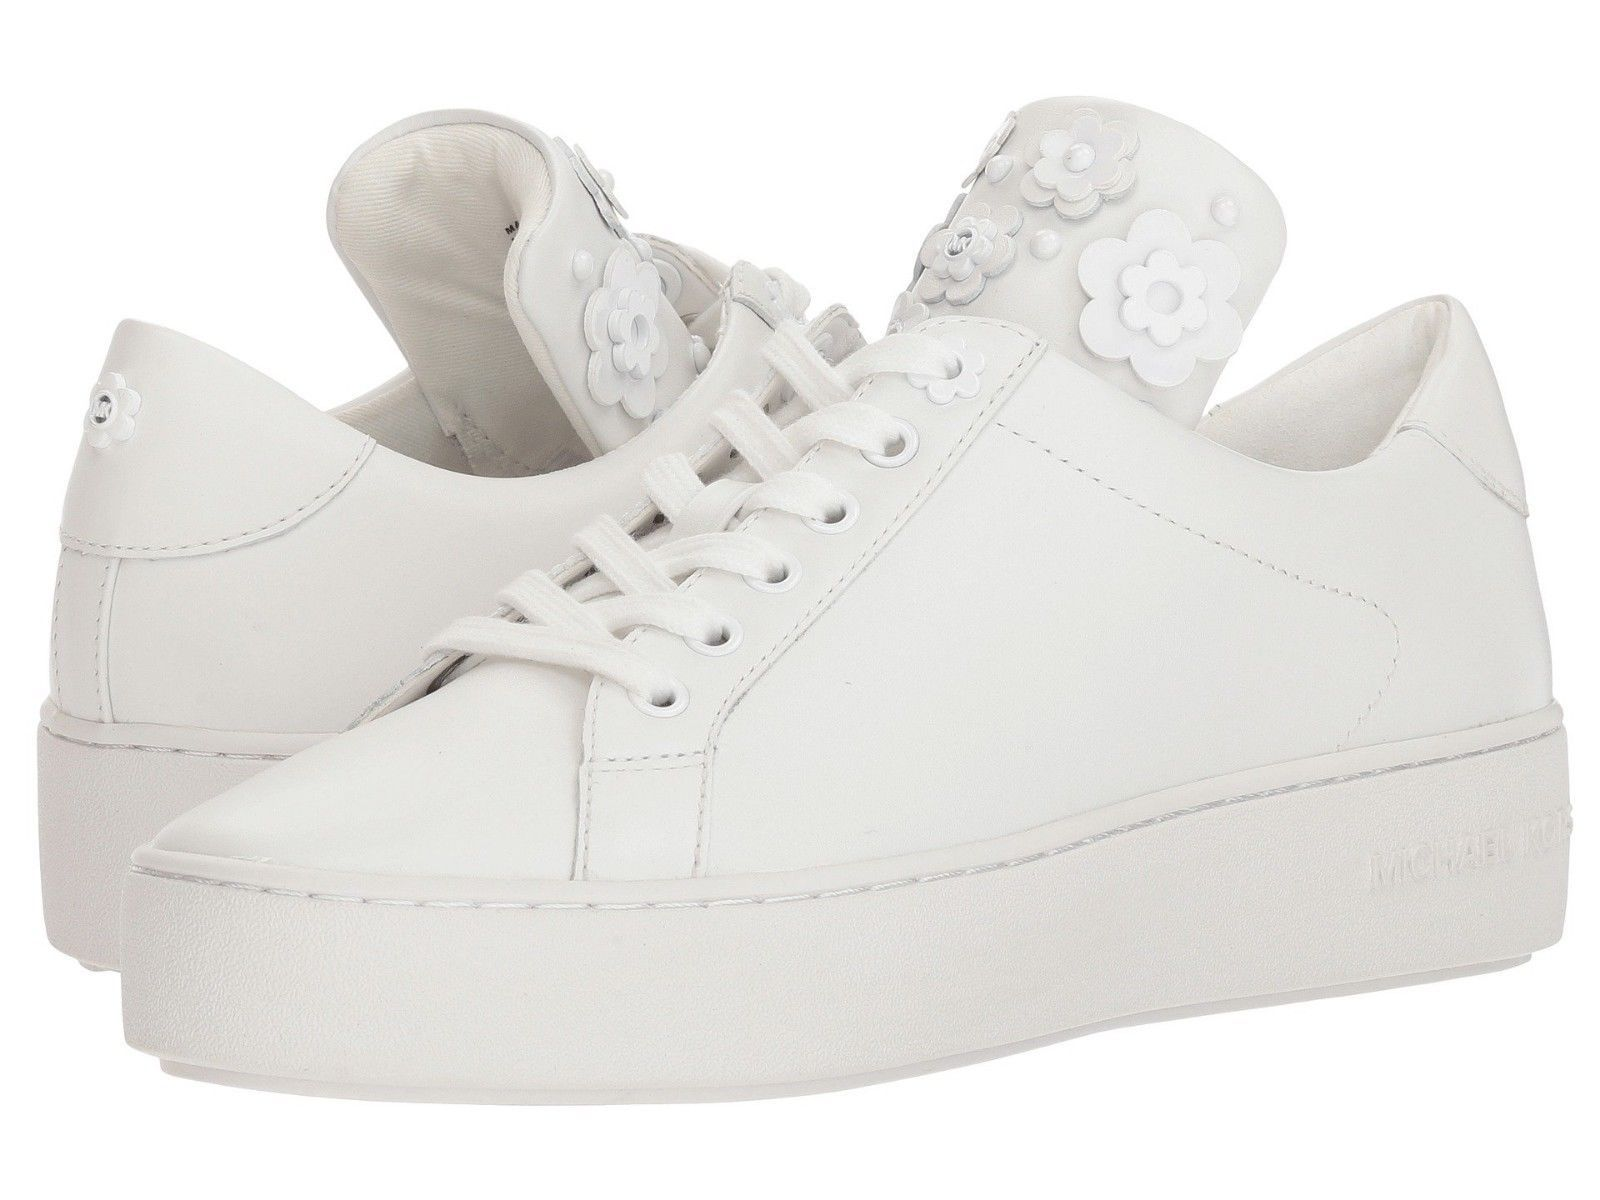 133833a902b MICHAEL Michael Kors Mindy Lace-Up Sneakers and 50 similar items. 57